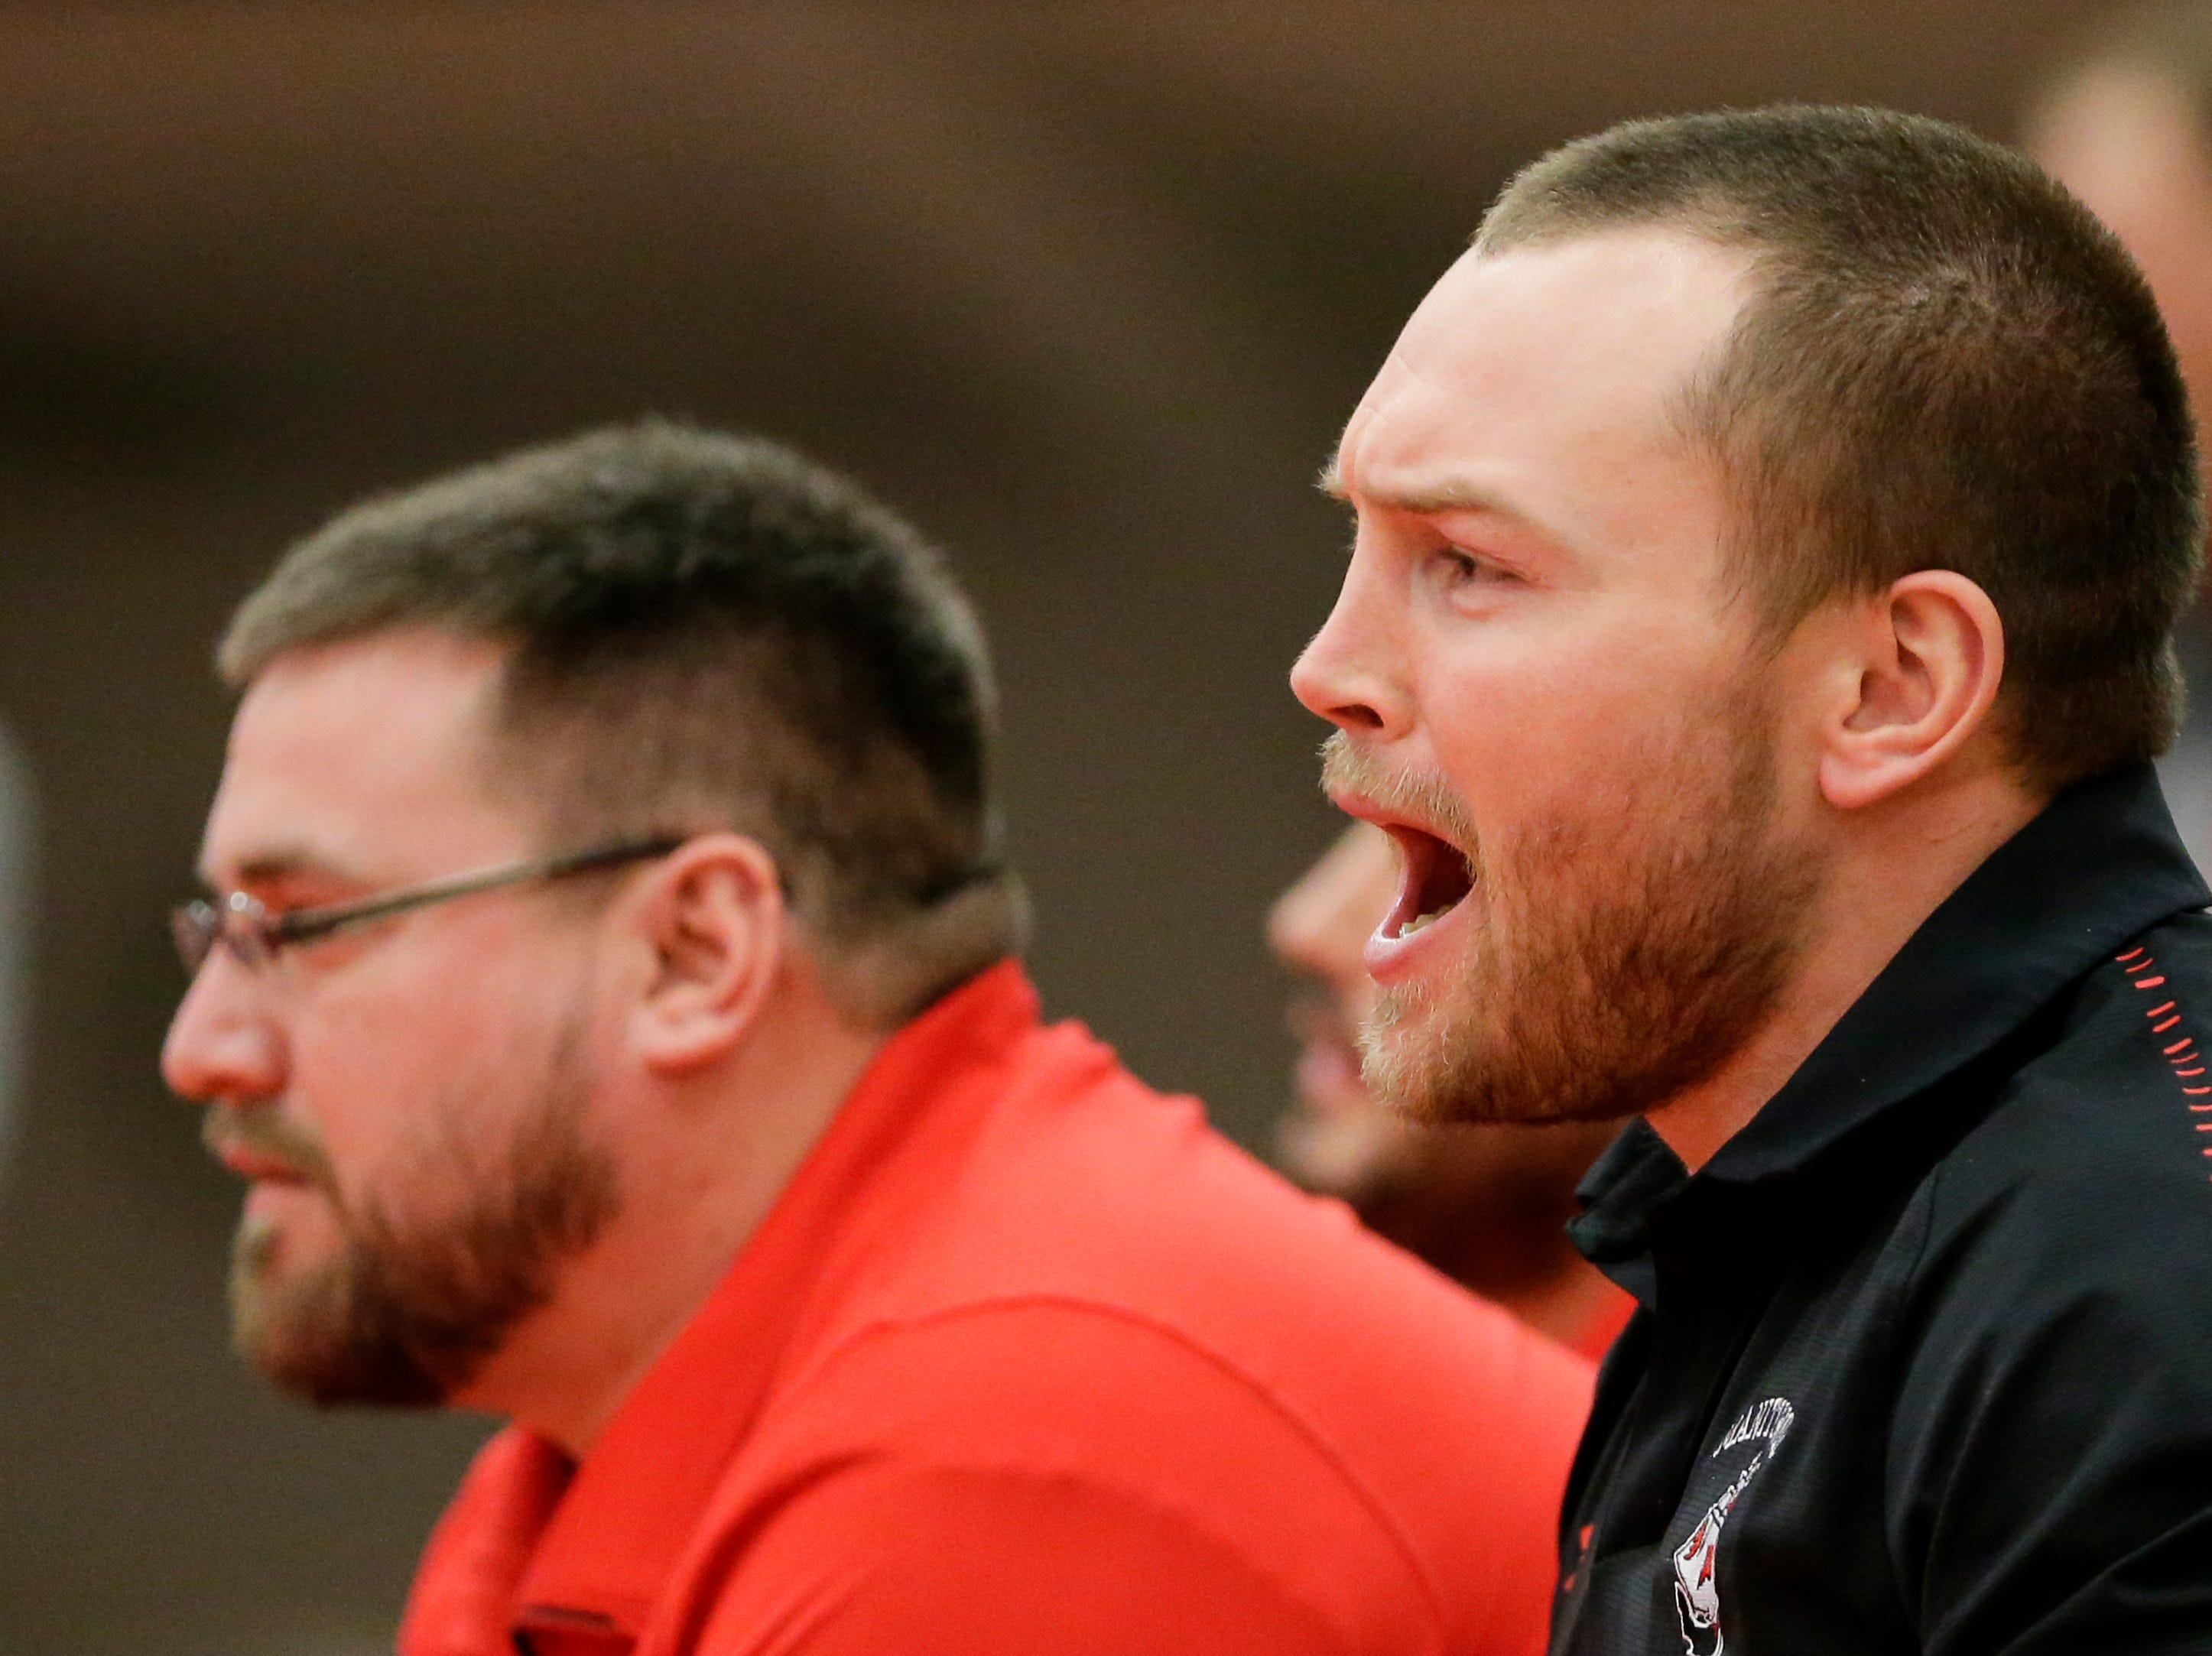 Manitowoc Lincoln coaches talk to Jacob DeBruin as he wrestles in the170 weight class during the WIAA D1 Regionals at Manitowoc Lincoln High School Saturday, February 9, 2019, in Manitowoc, Wis. Joshua Clark/USA TODAY NETWORK-Wisconsin